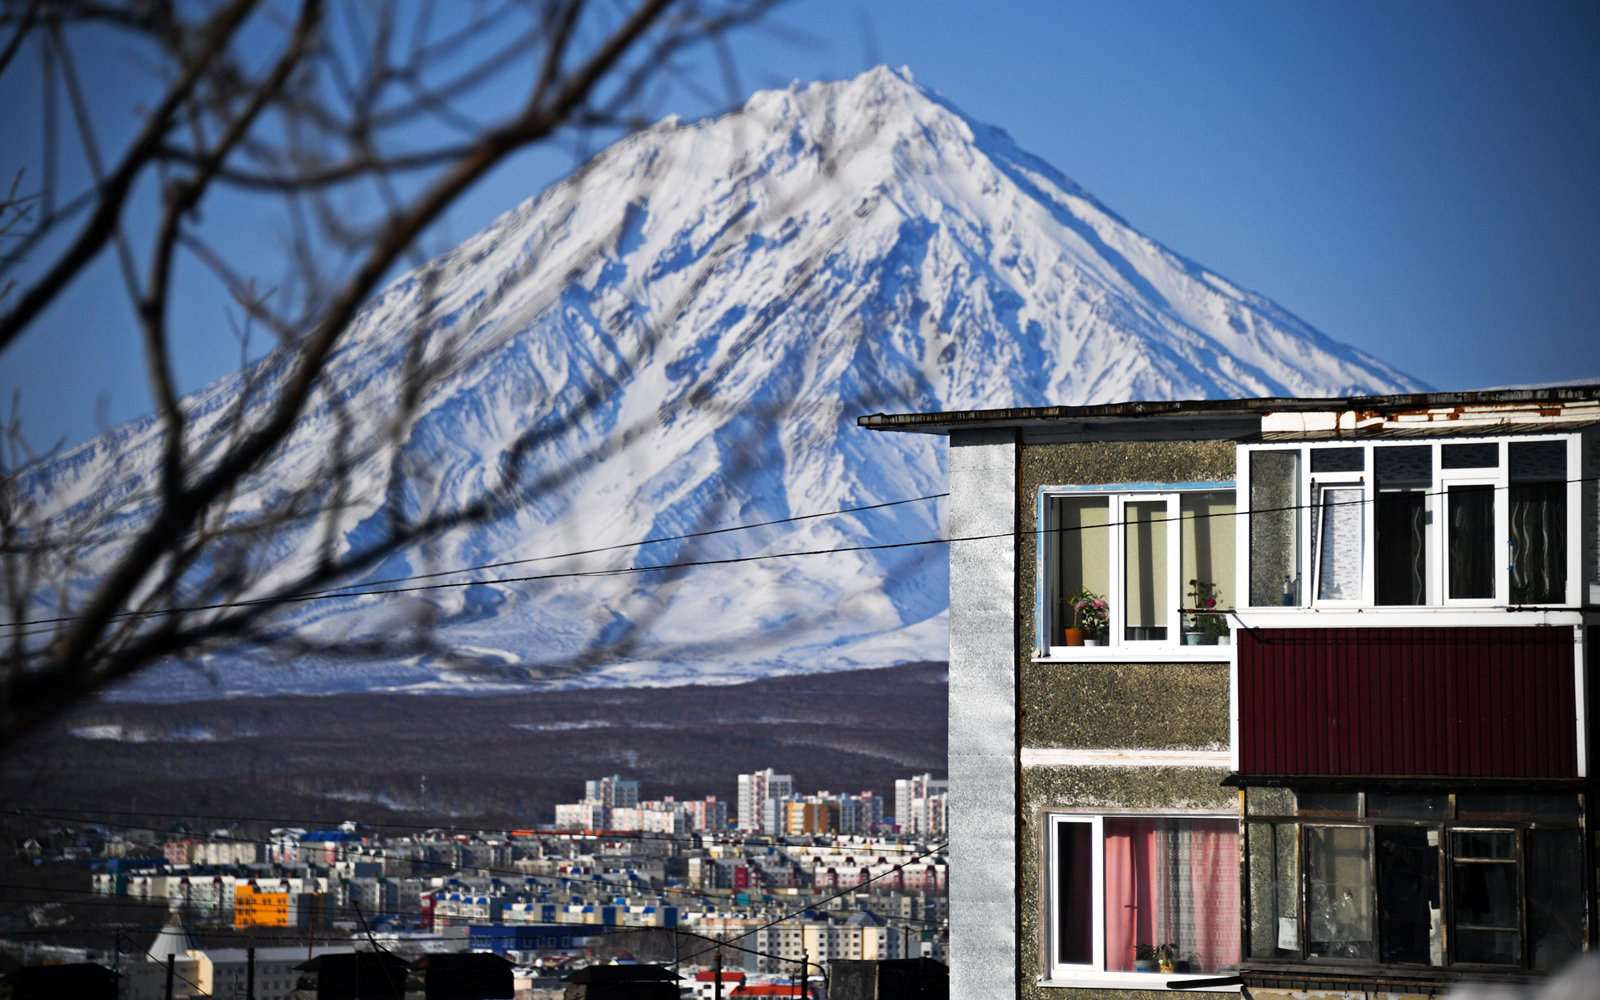 The city of Petropavlovsk-Kamchatsky